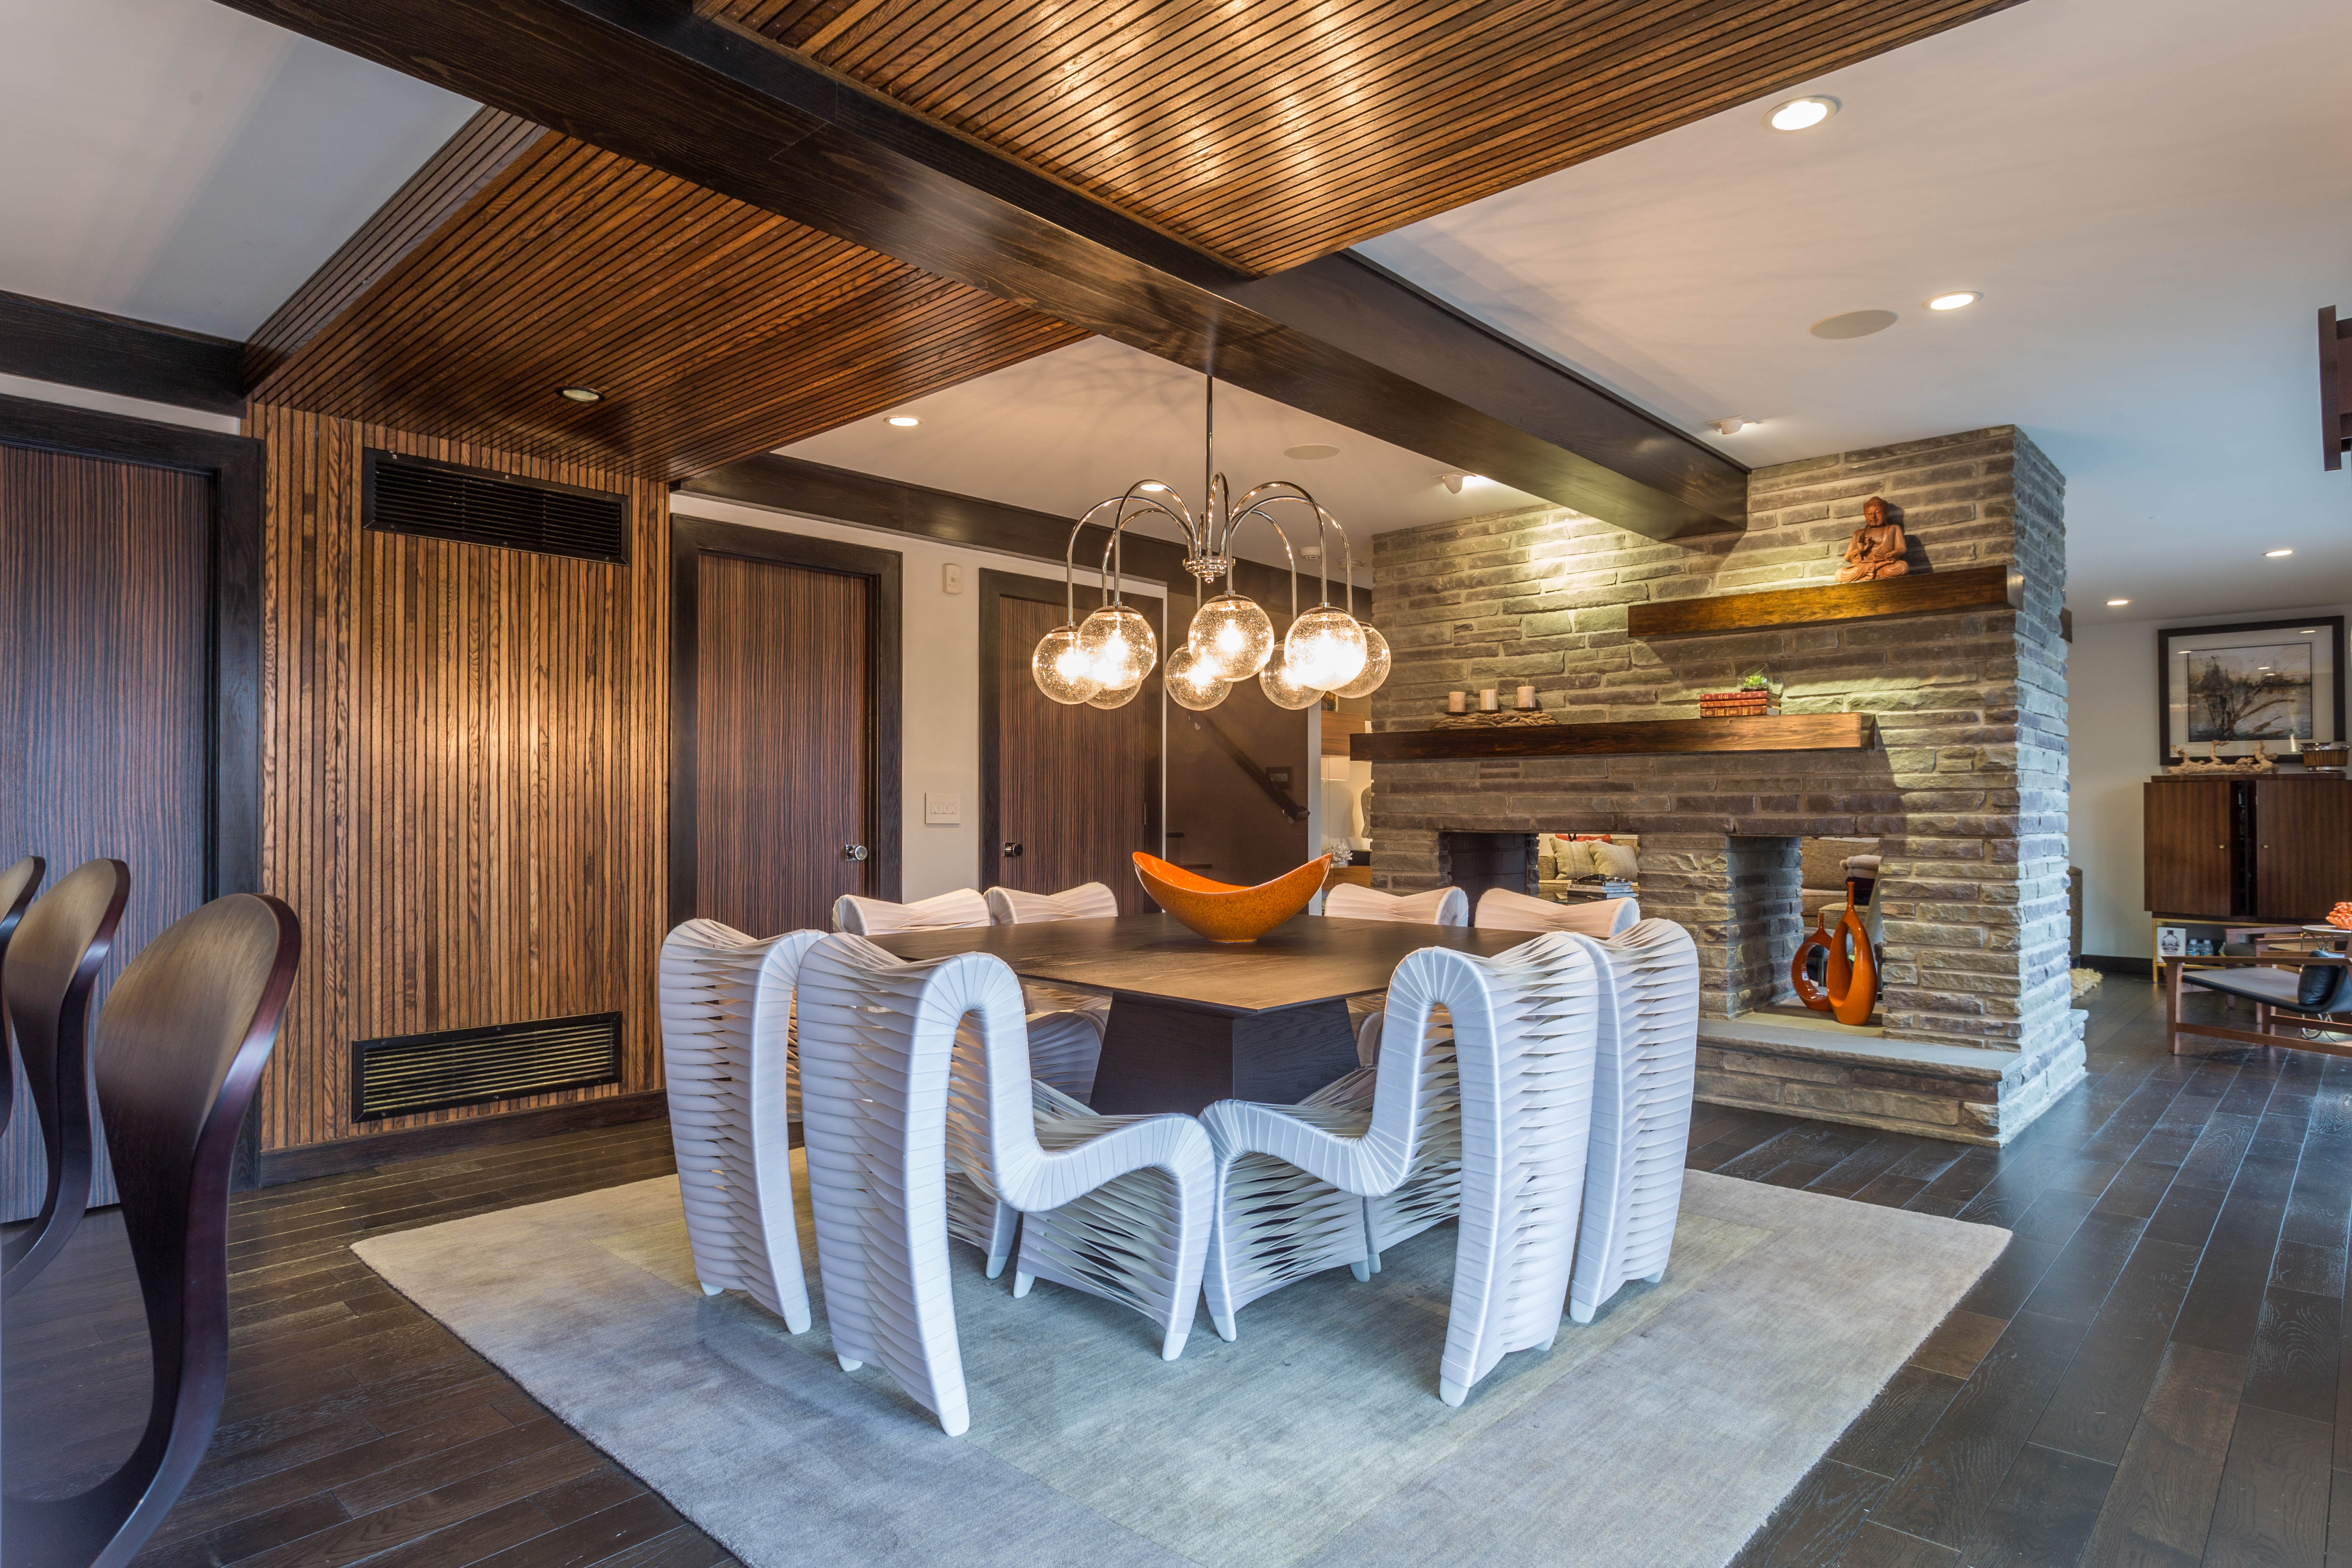 FW Interiors Is A Premier Design Company Operating From Dutchess County,  With A Second Office In Florida. Services Offered Include Project  Management, ...